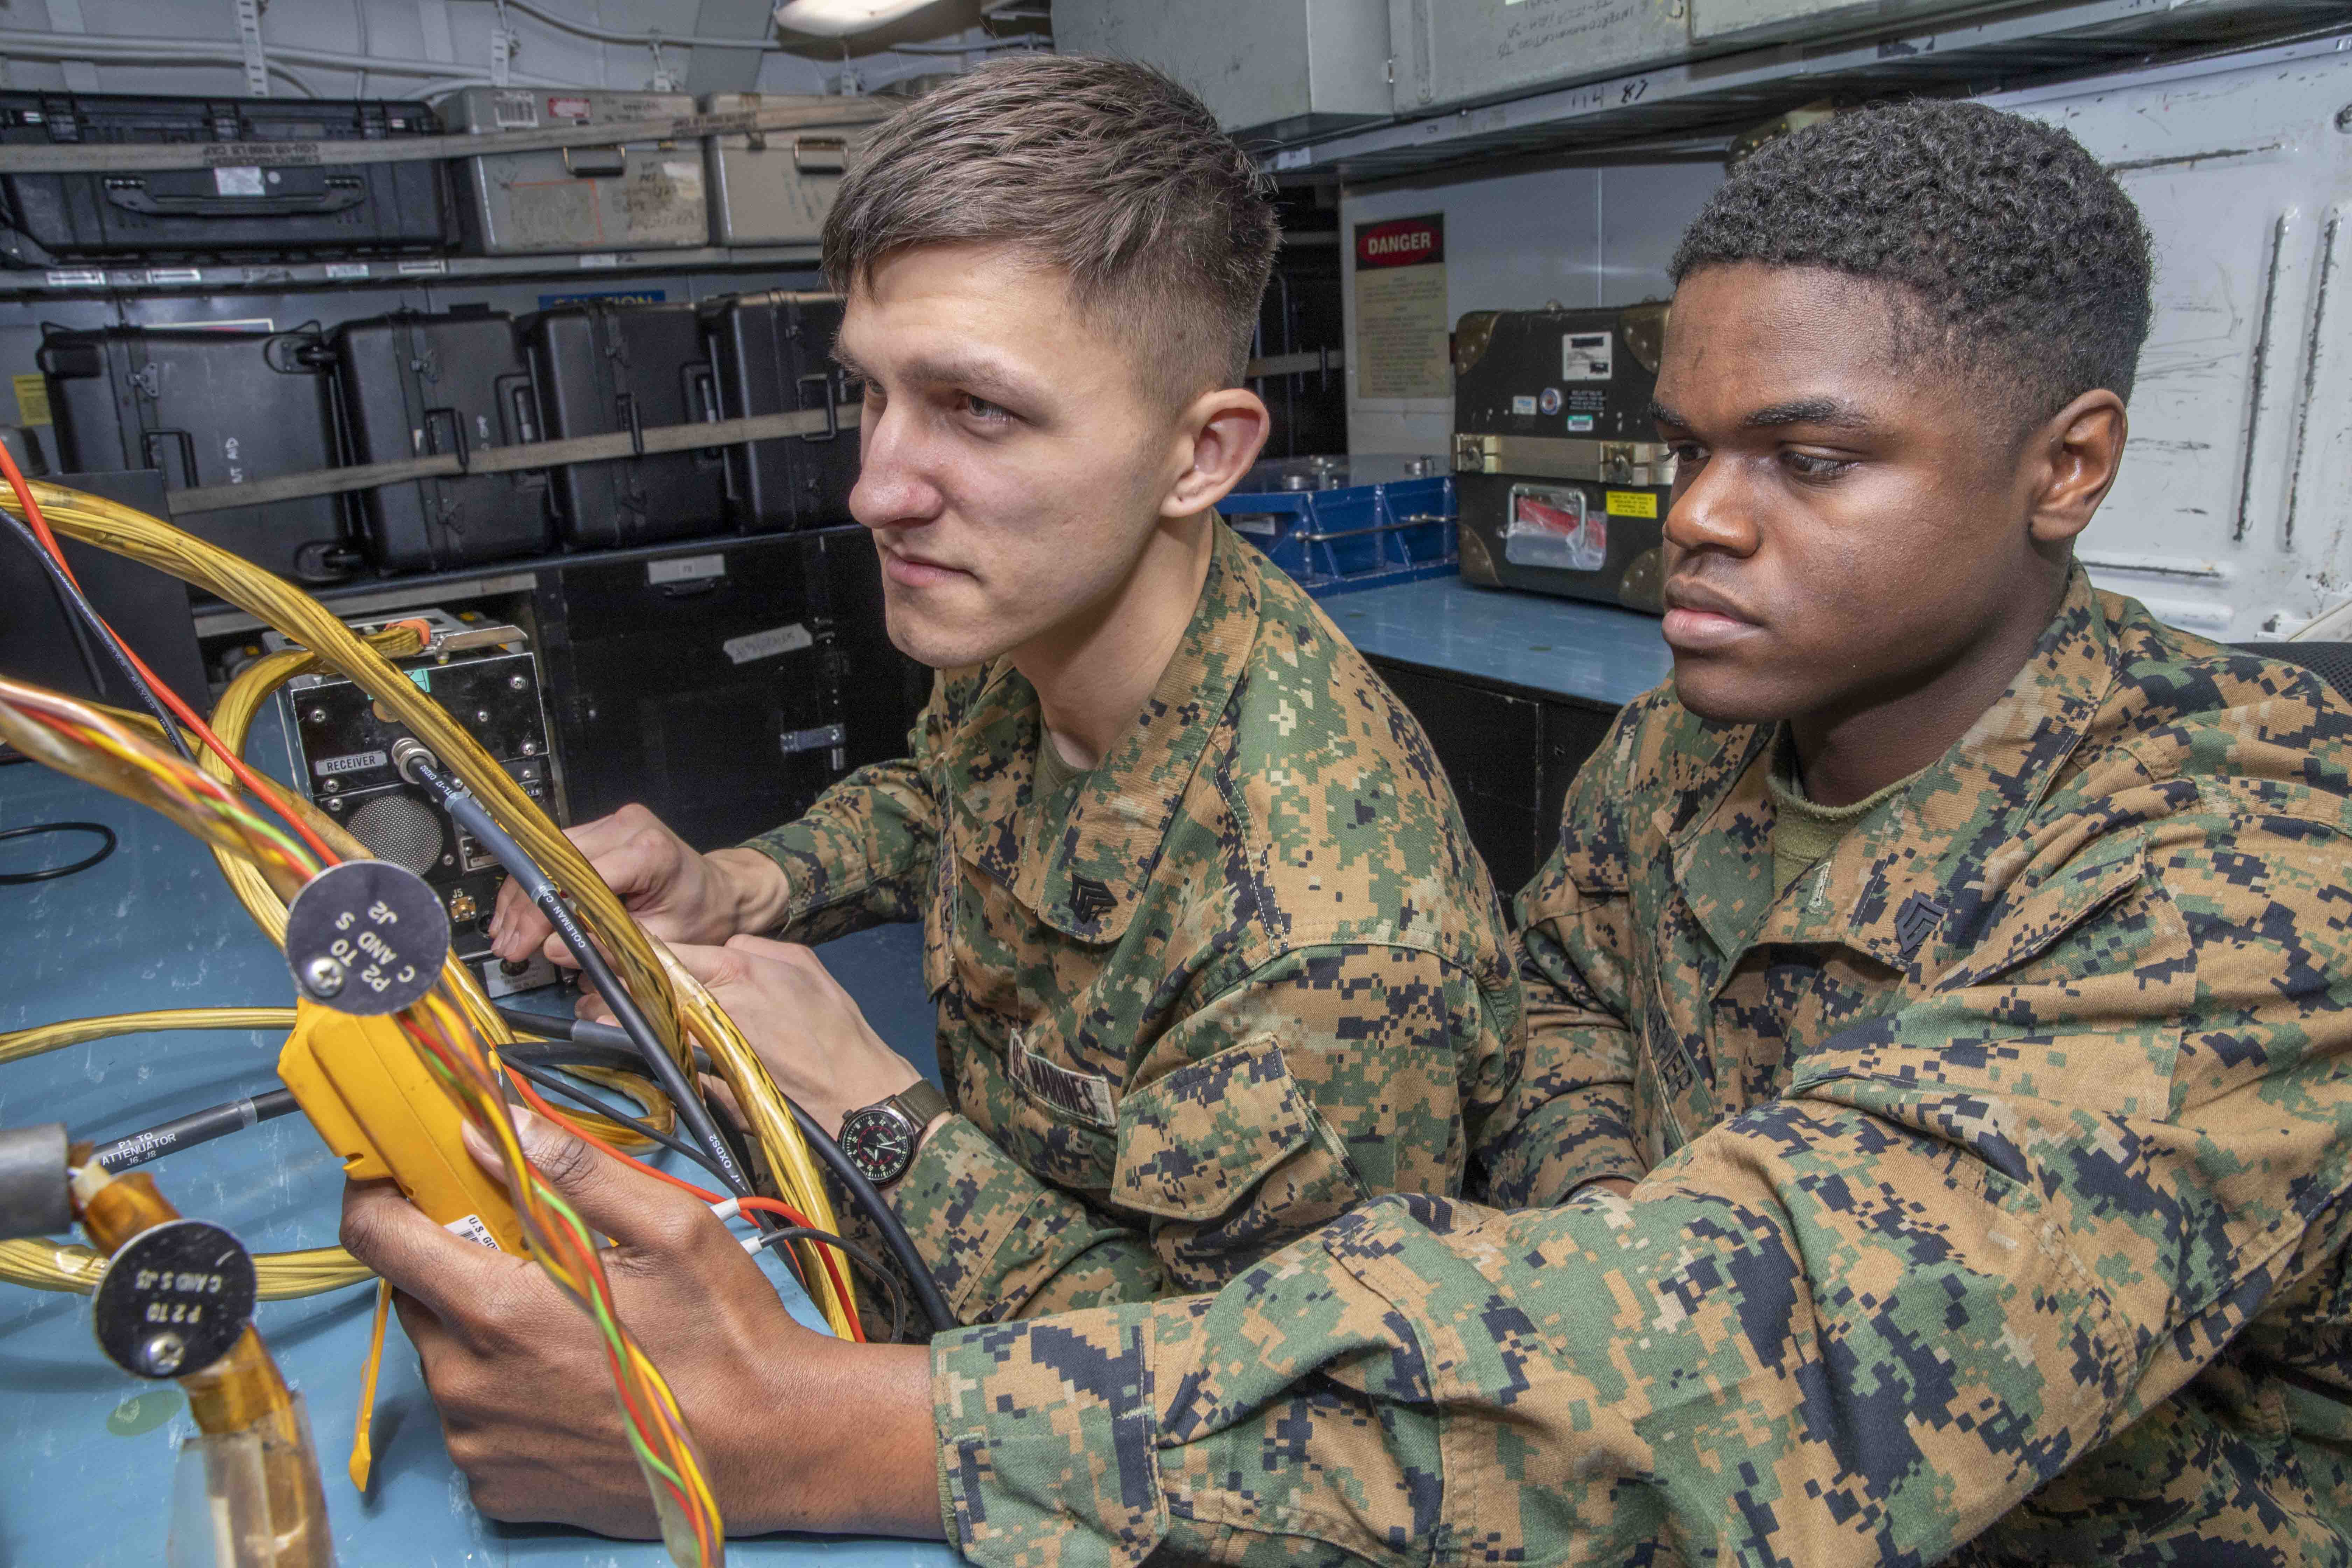 Sgt. Devin Salamaca, left, and Sgt. Shaquille Turner, both assigned to the 24th Marine Expeditionary Unit (24th MEU), perform intermediate maintenance on a radar altimeter onboard the Wasp-class amphibious assault ship USS Iwo Jima (LHD 7).